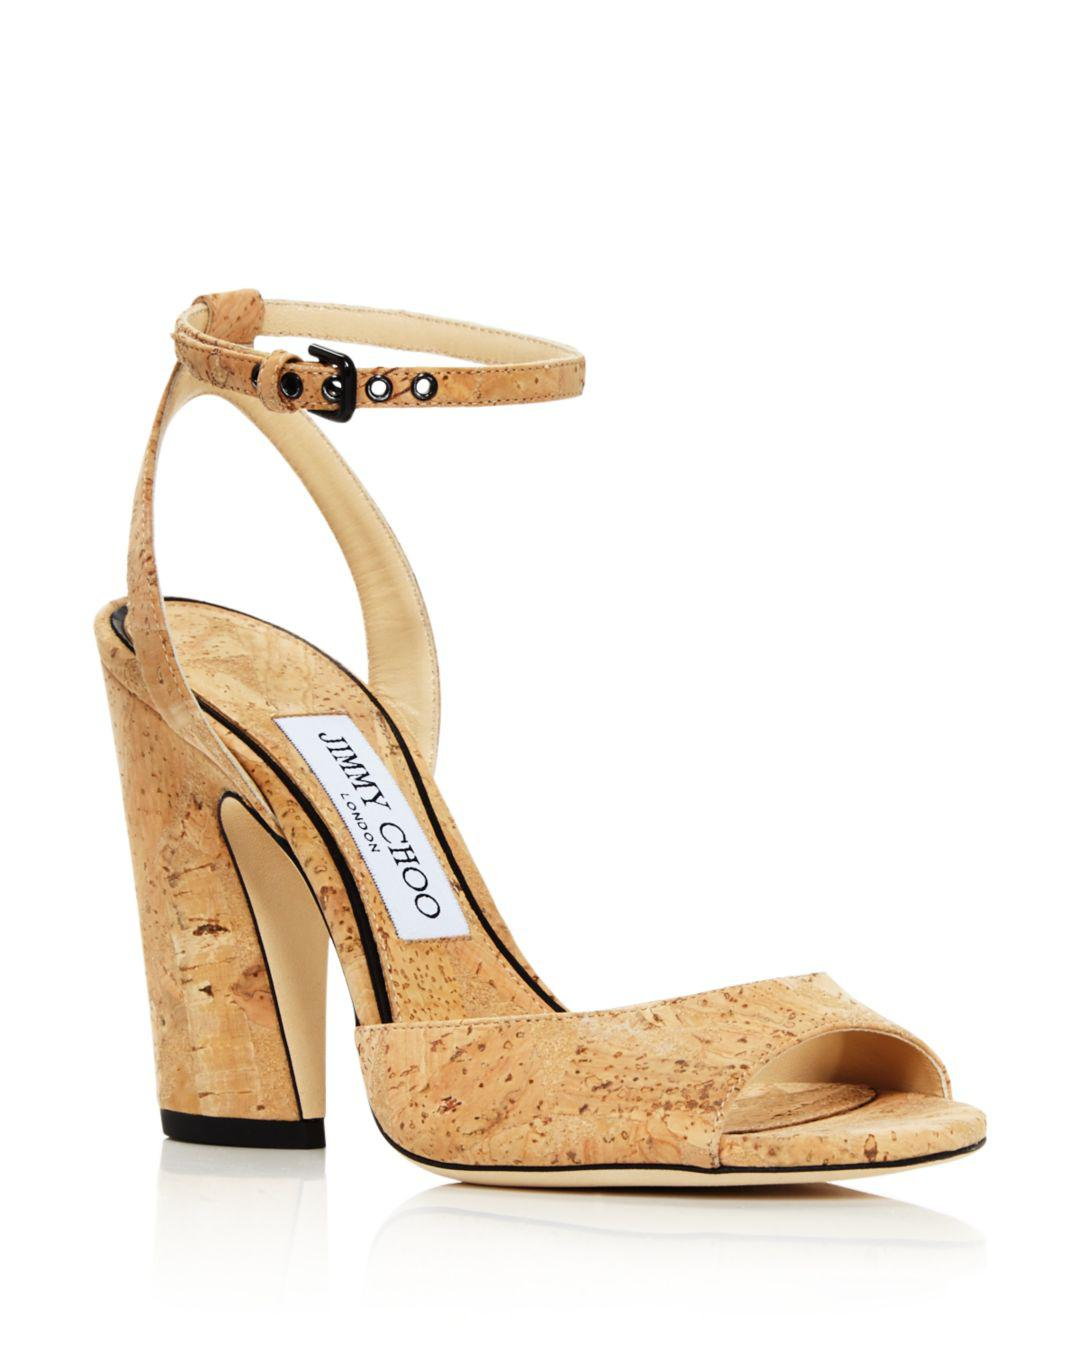 ab4fecd6dbe8 Jimmy Choo Women s Miranda 100 Cork High-heel Sandals in Natural - Lyst